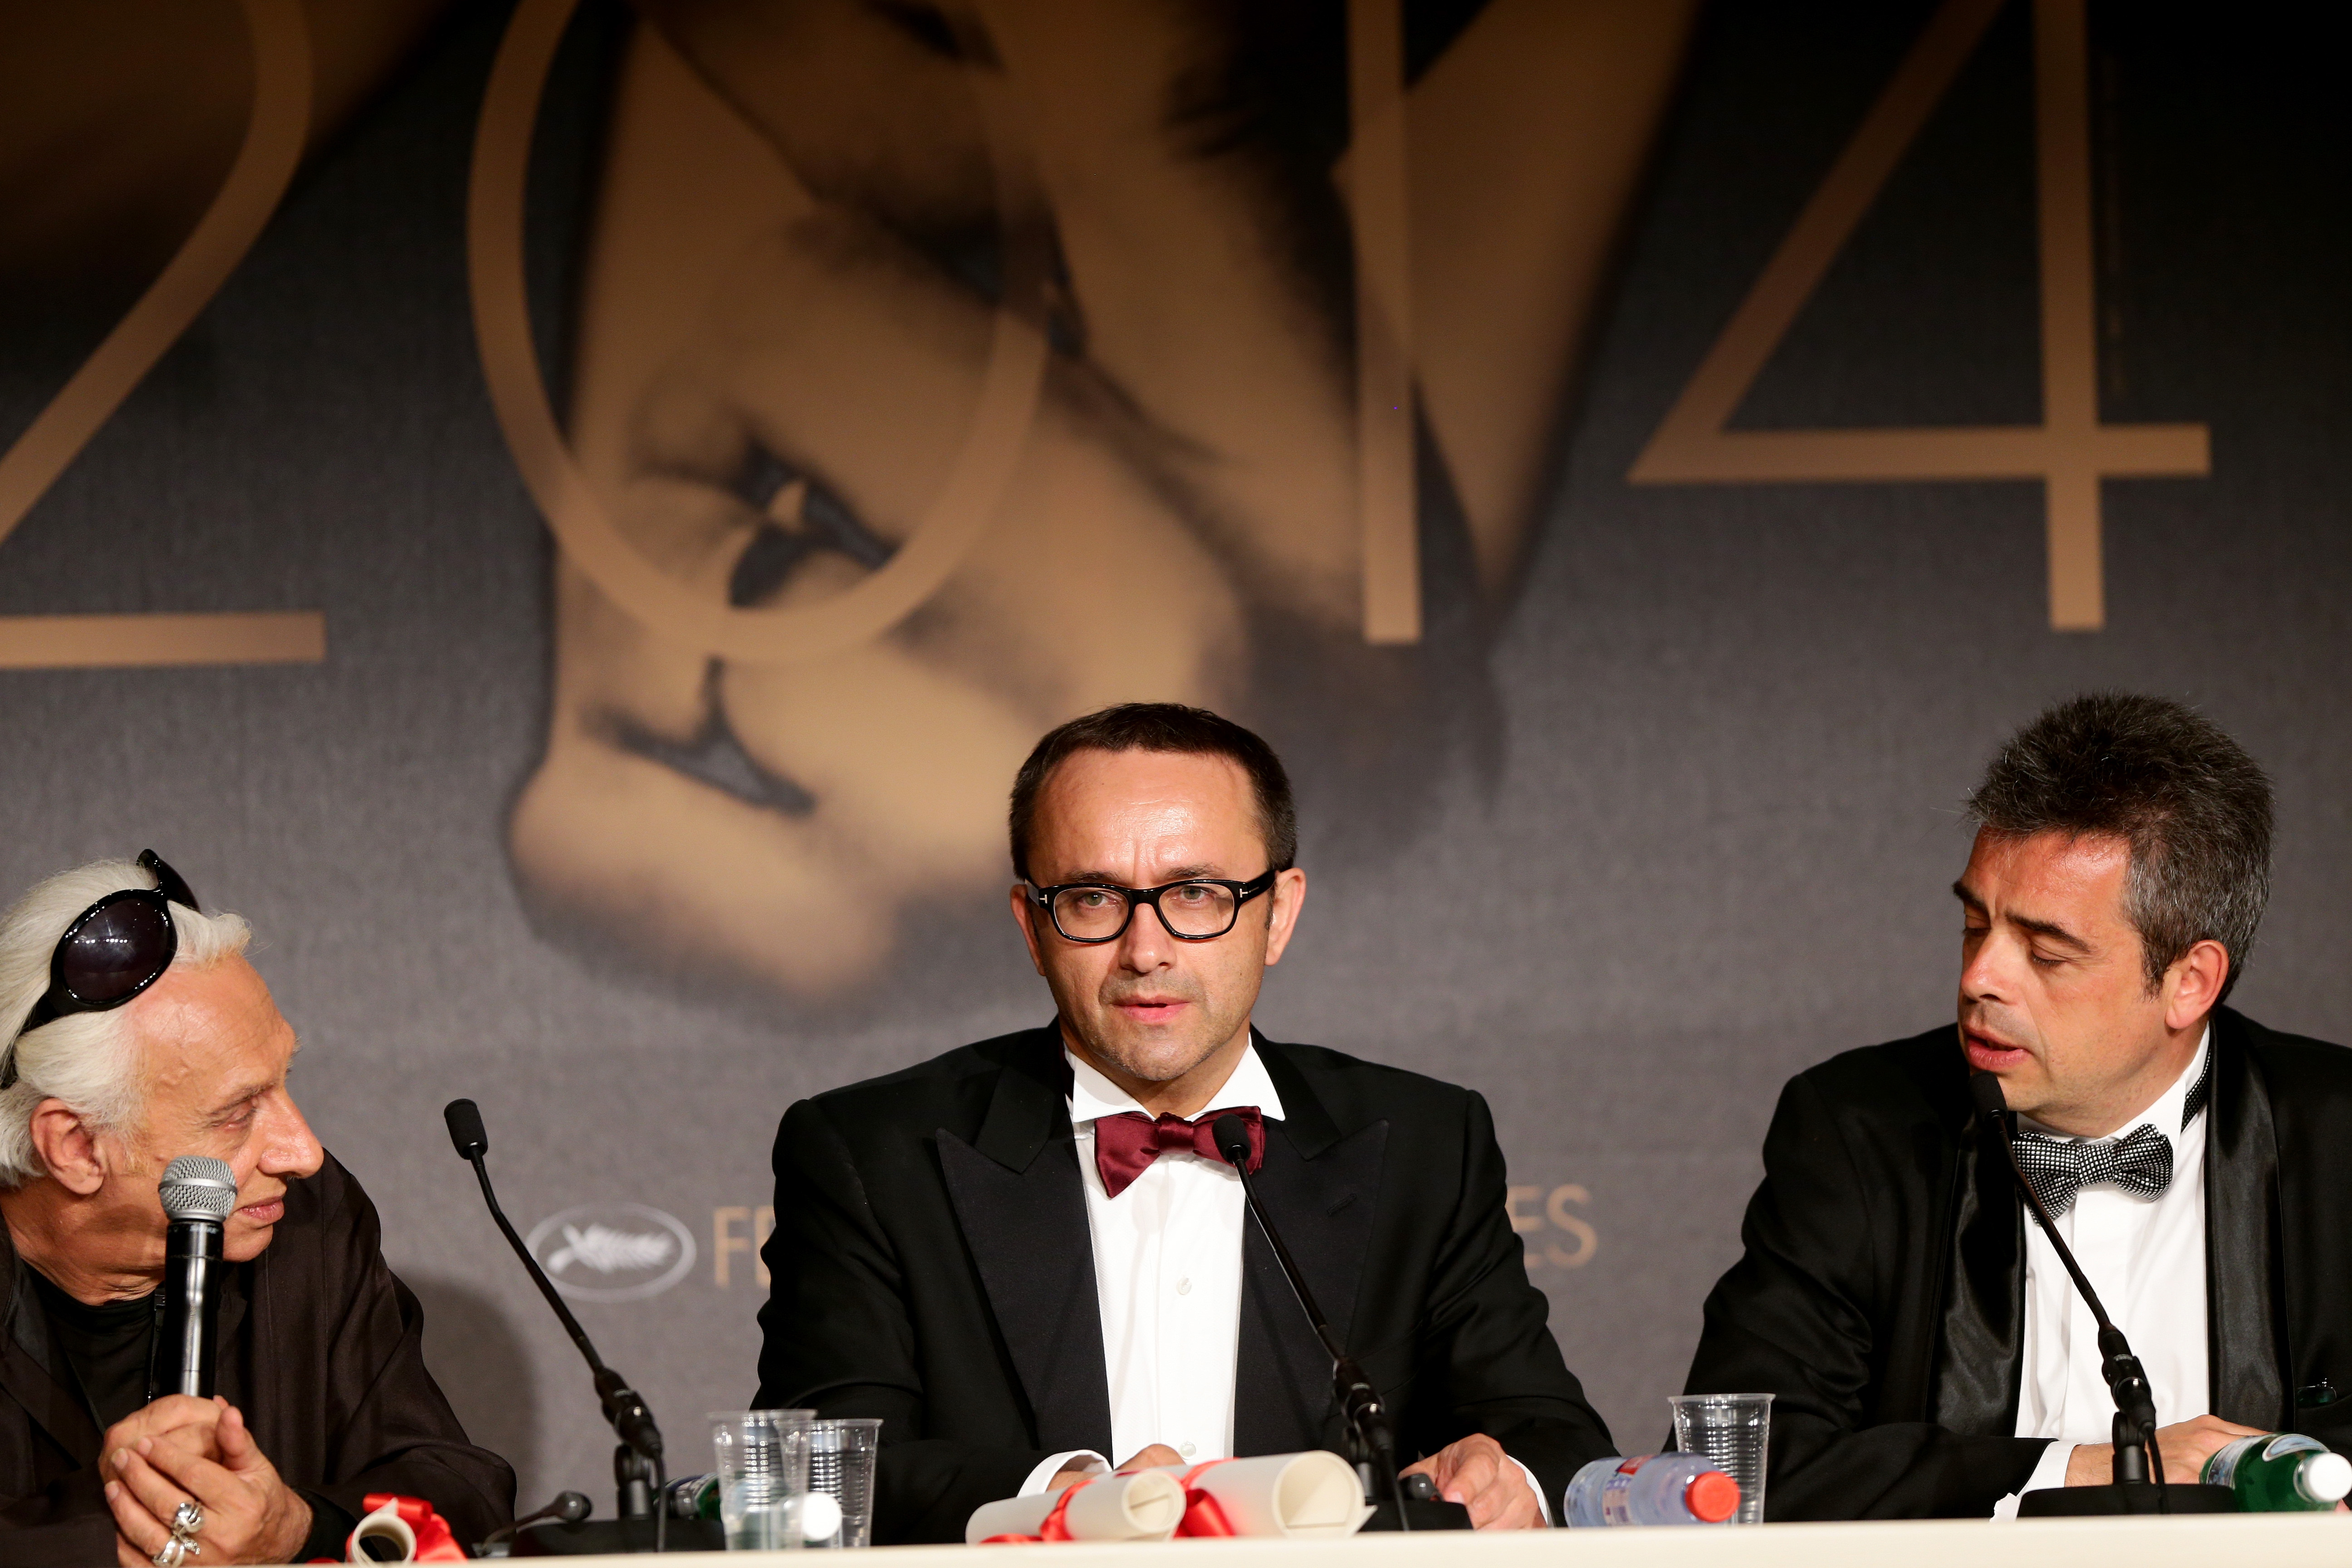 Russian director and screenwriter Andrey Zvyagintsev, center, winner of the best screenplay at the Cannes Film Festival for his film Leviathan, attends a press conference in Cannes, France, on May 24, 2014